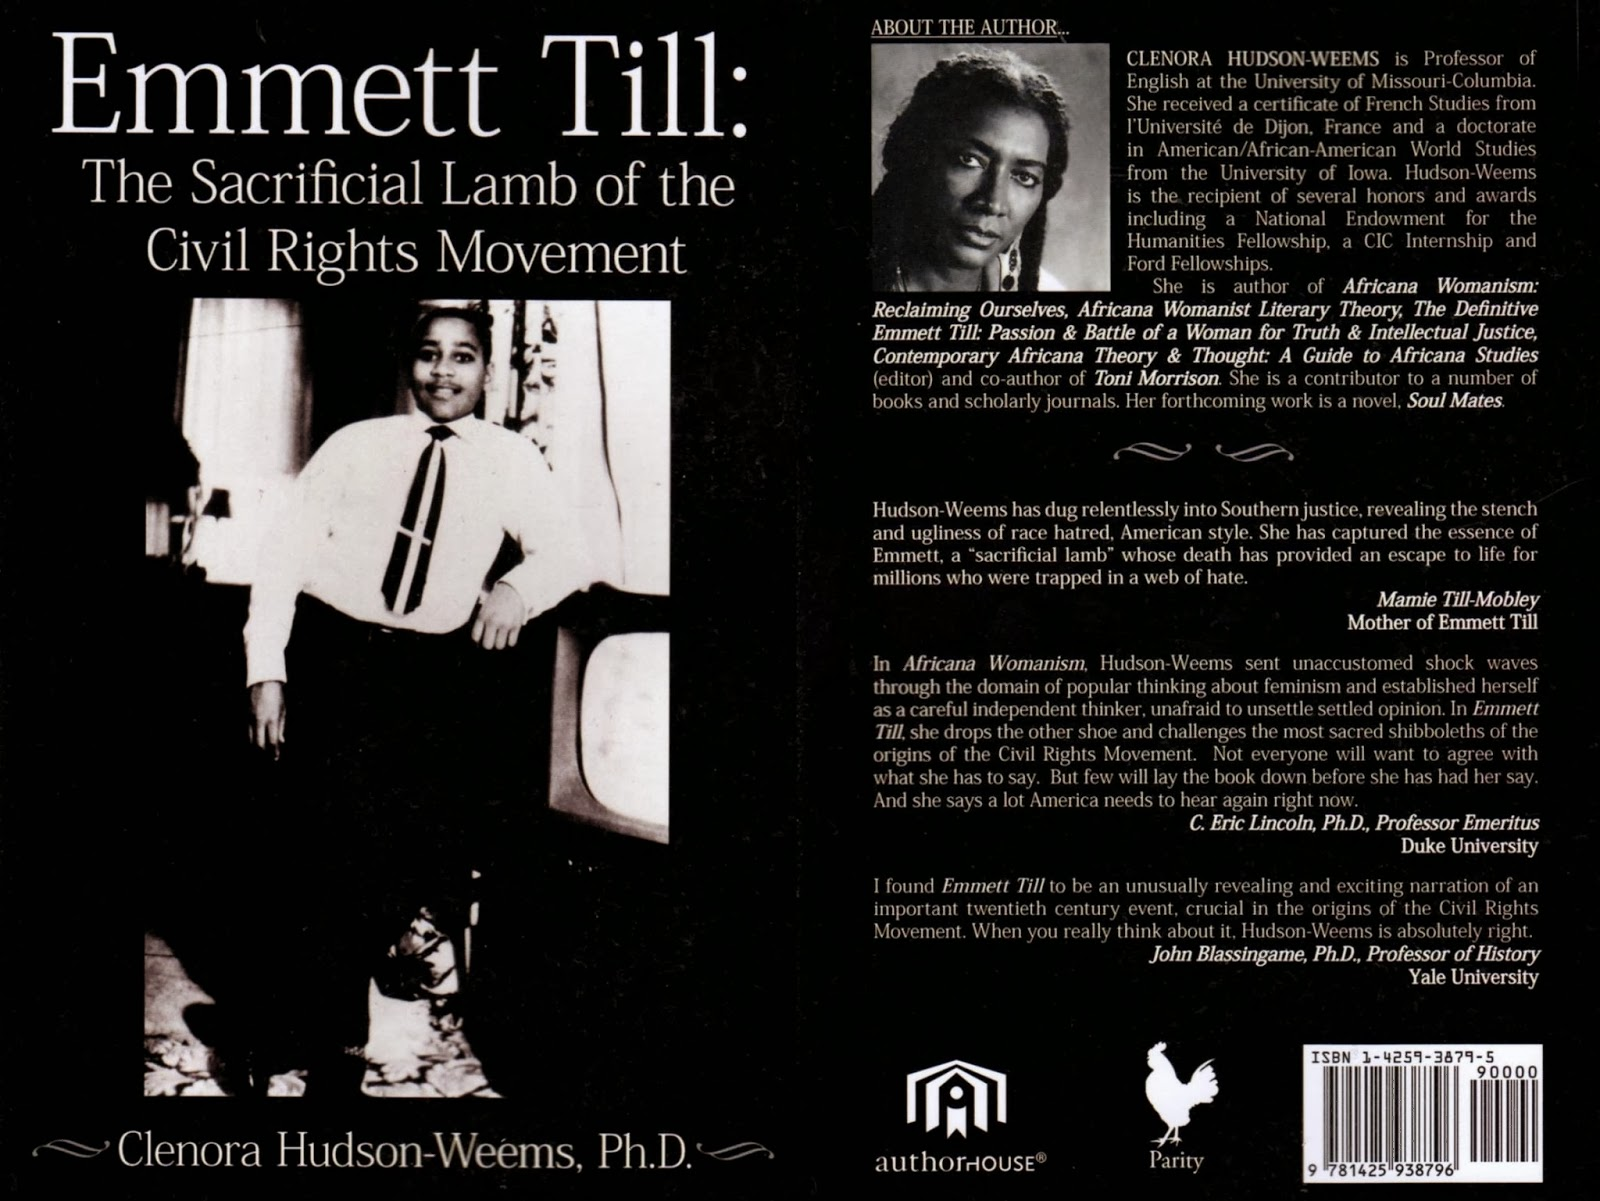 emmett till and song of solomon essay